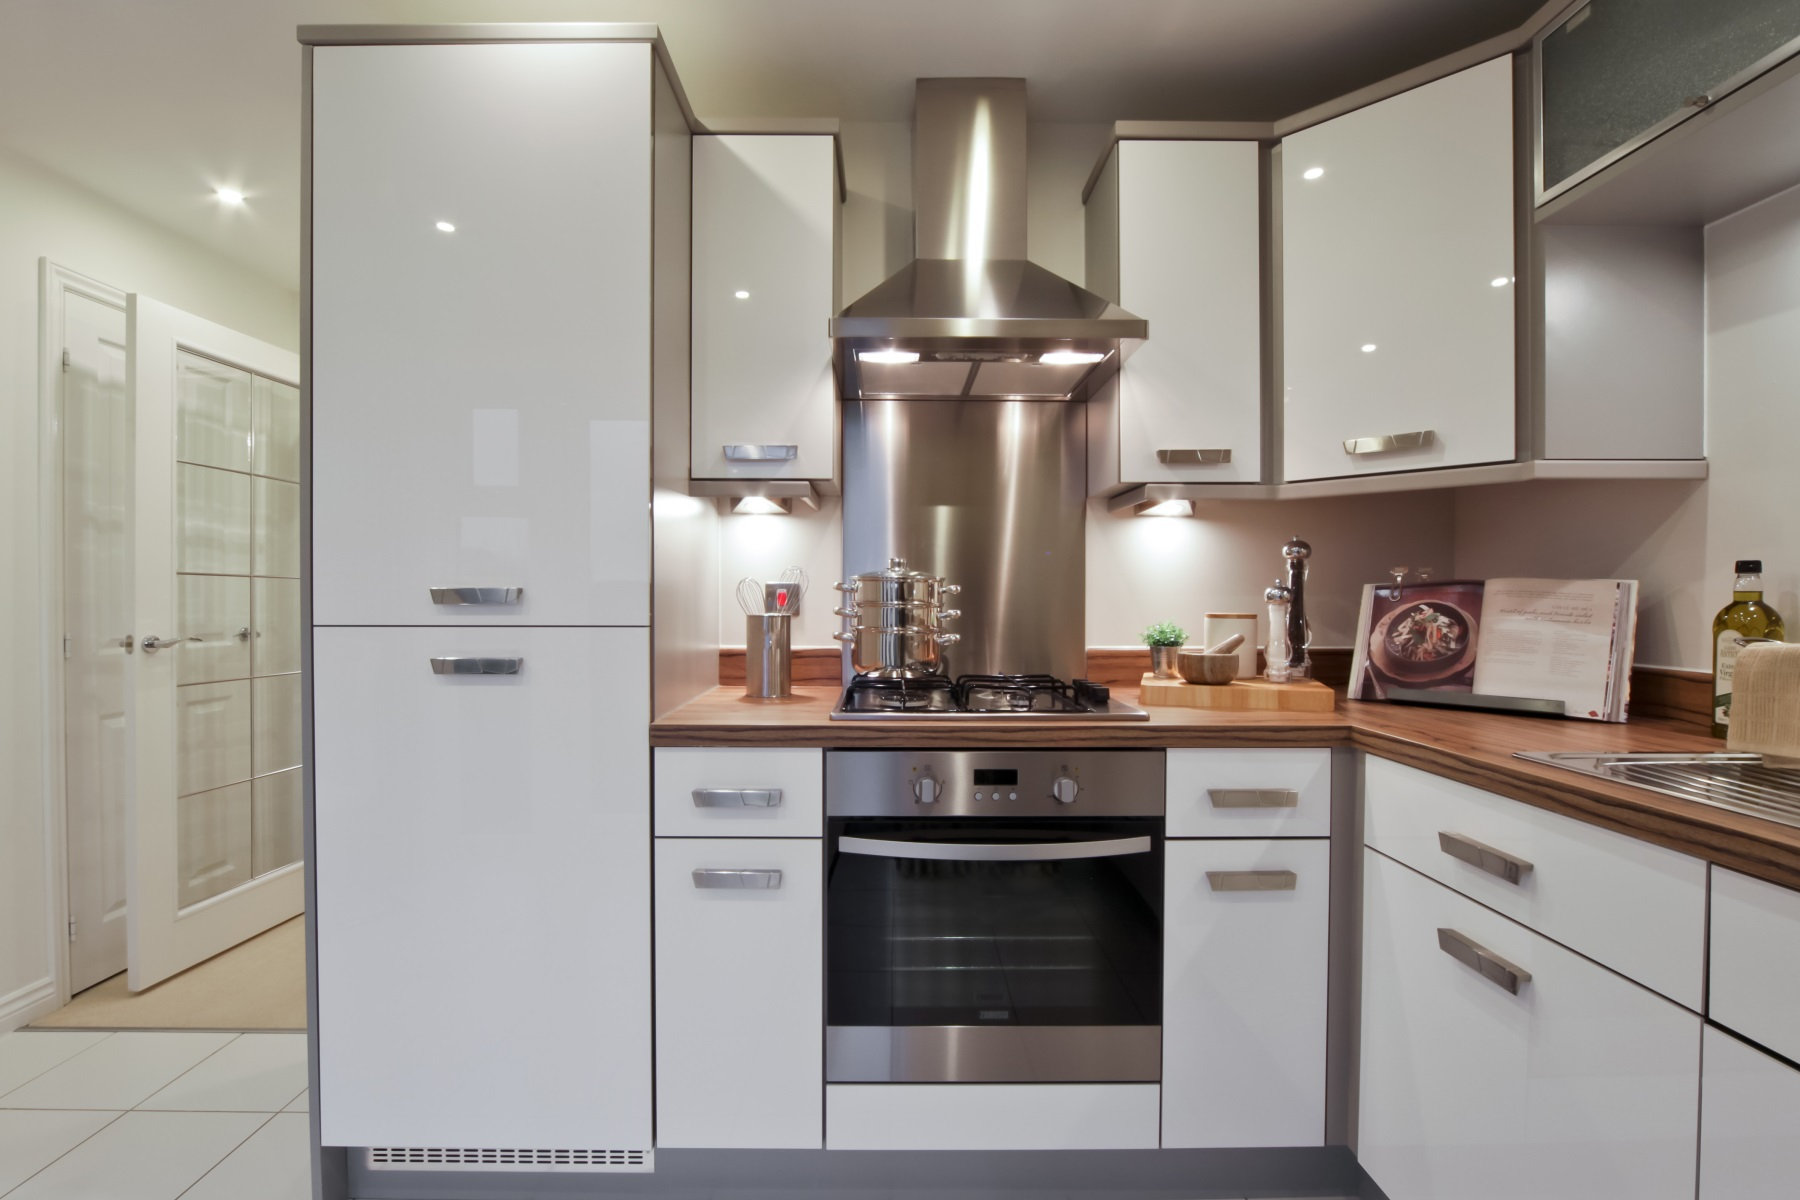 Earlsford Showhome Kitchen - Sandbrook View